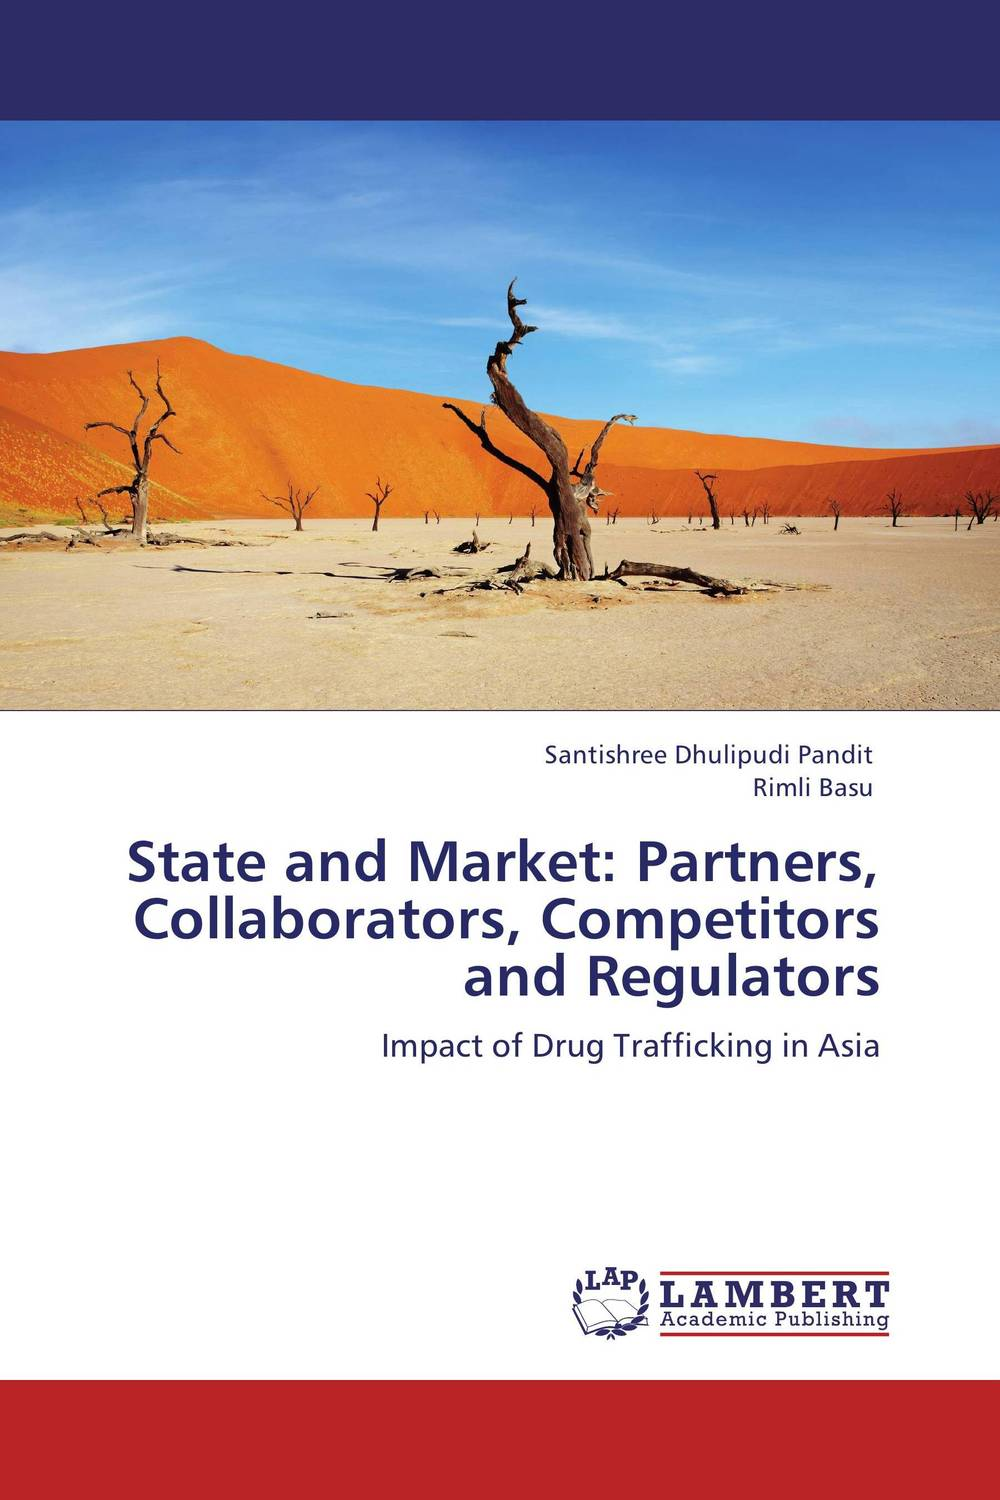 State and Market: Partners, Collaborators, Competitors and Regulators